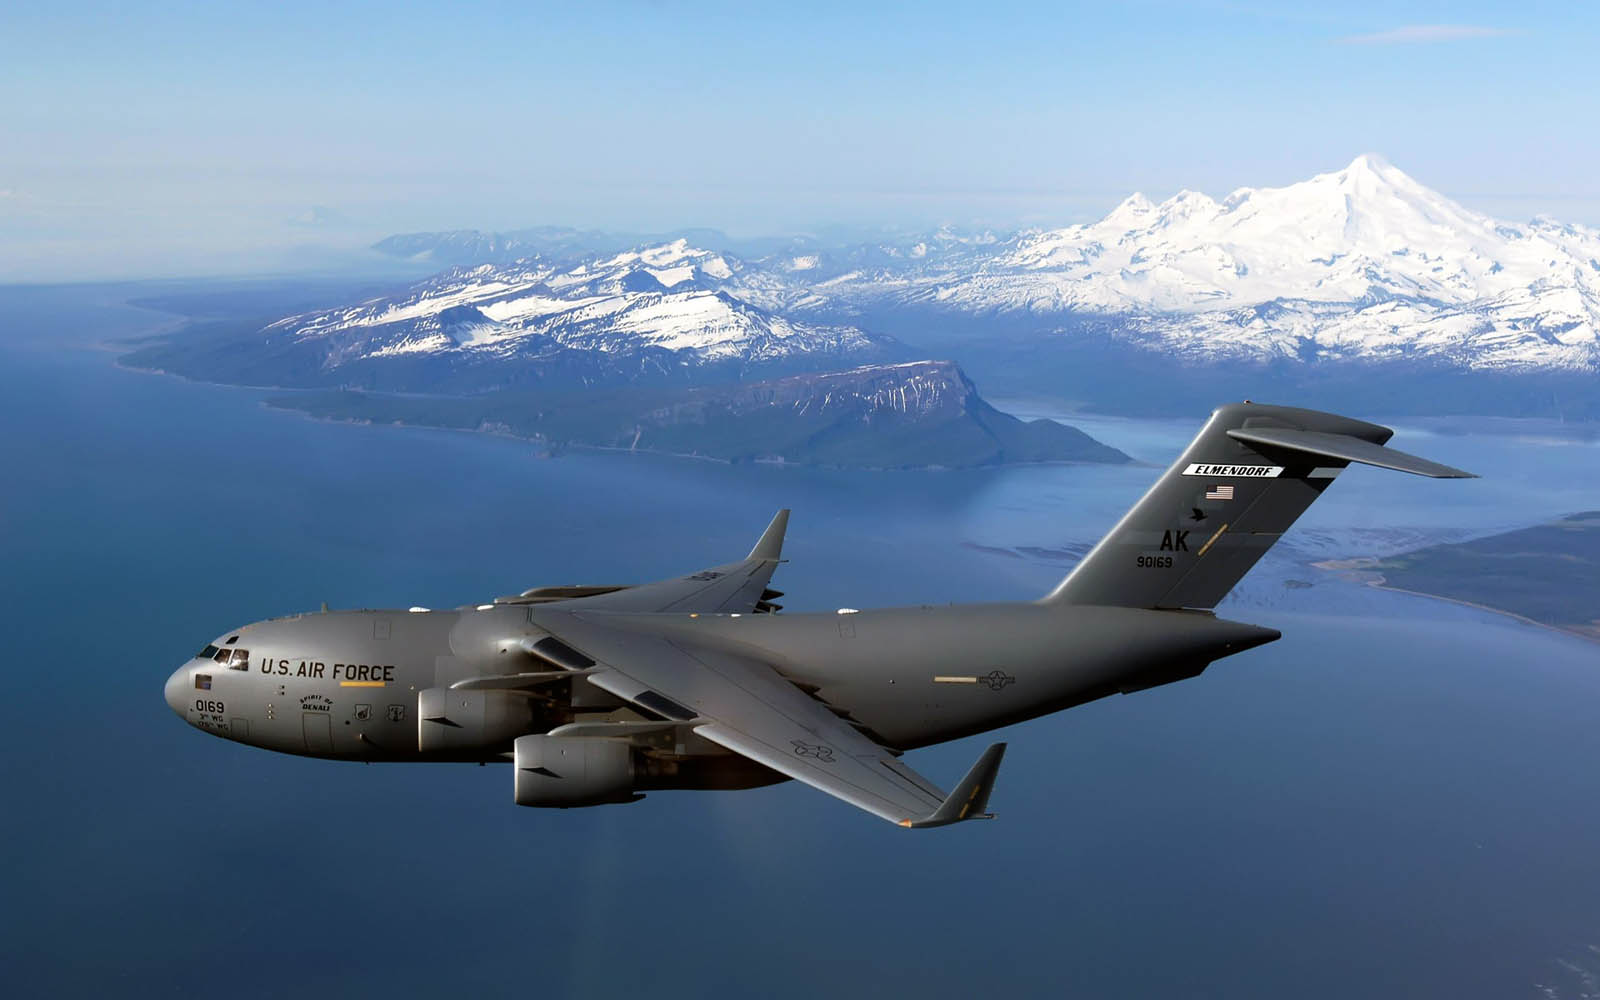 Wallpapers C 17 Globemaster Iii Aircraft Wallpapers HD Wallpapers Download Free Images Wallpaper [1000image.com]